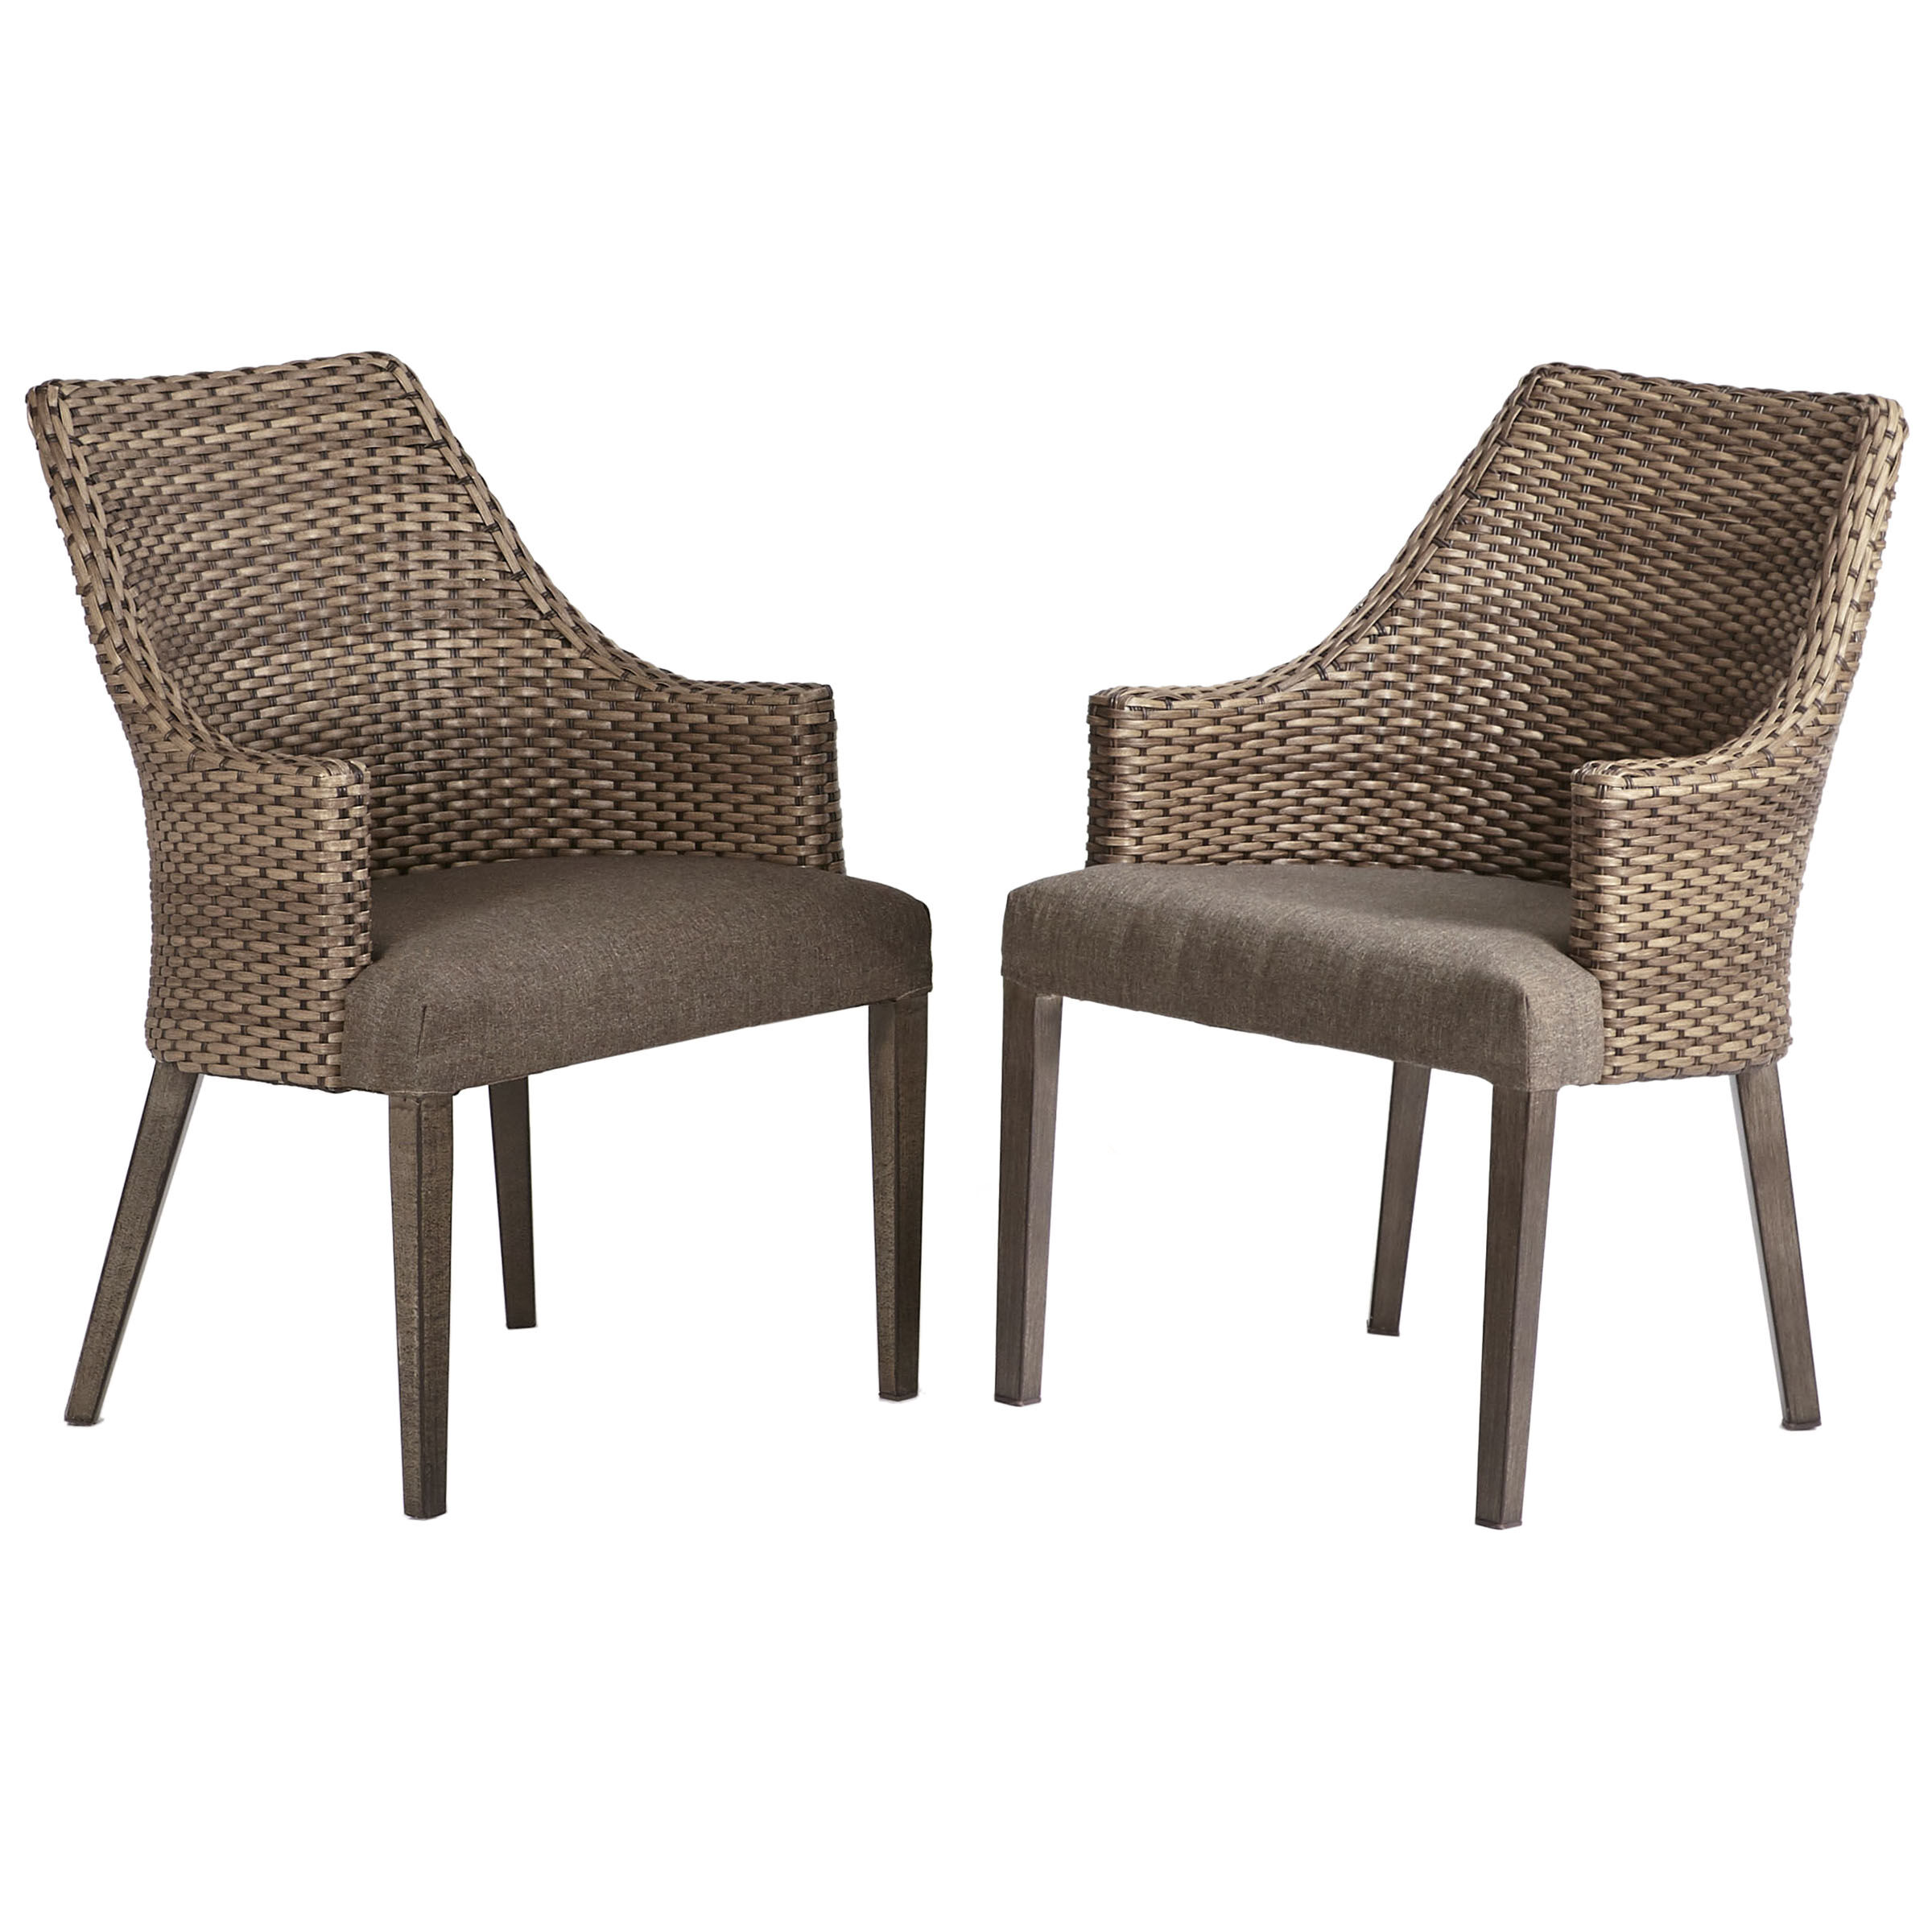 At Home Chairs Camden Set Of 2 Dining Chairs